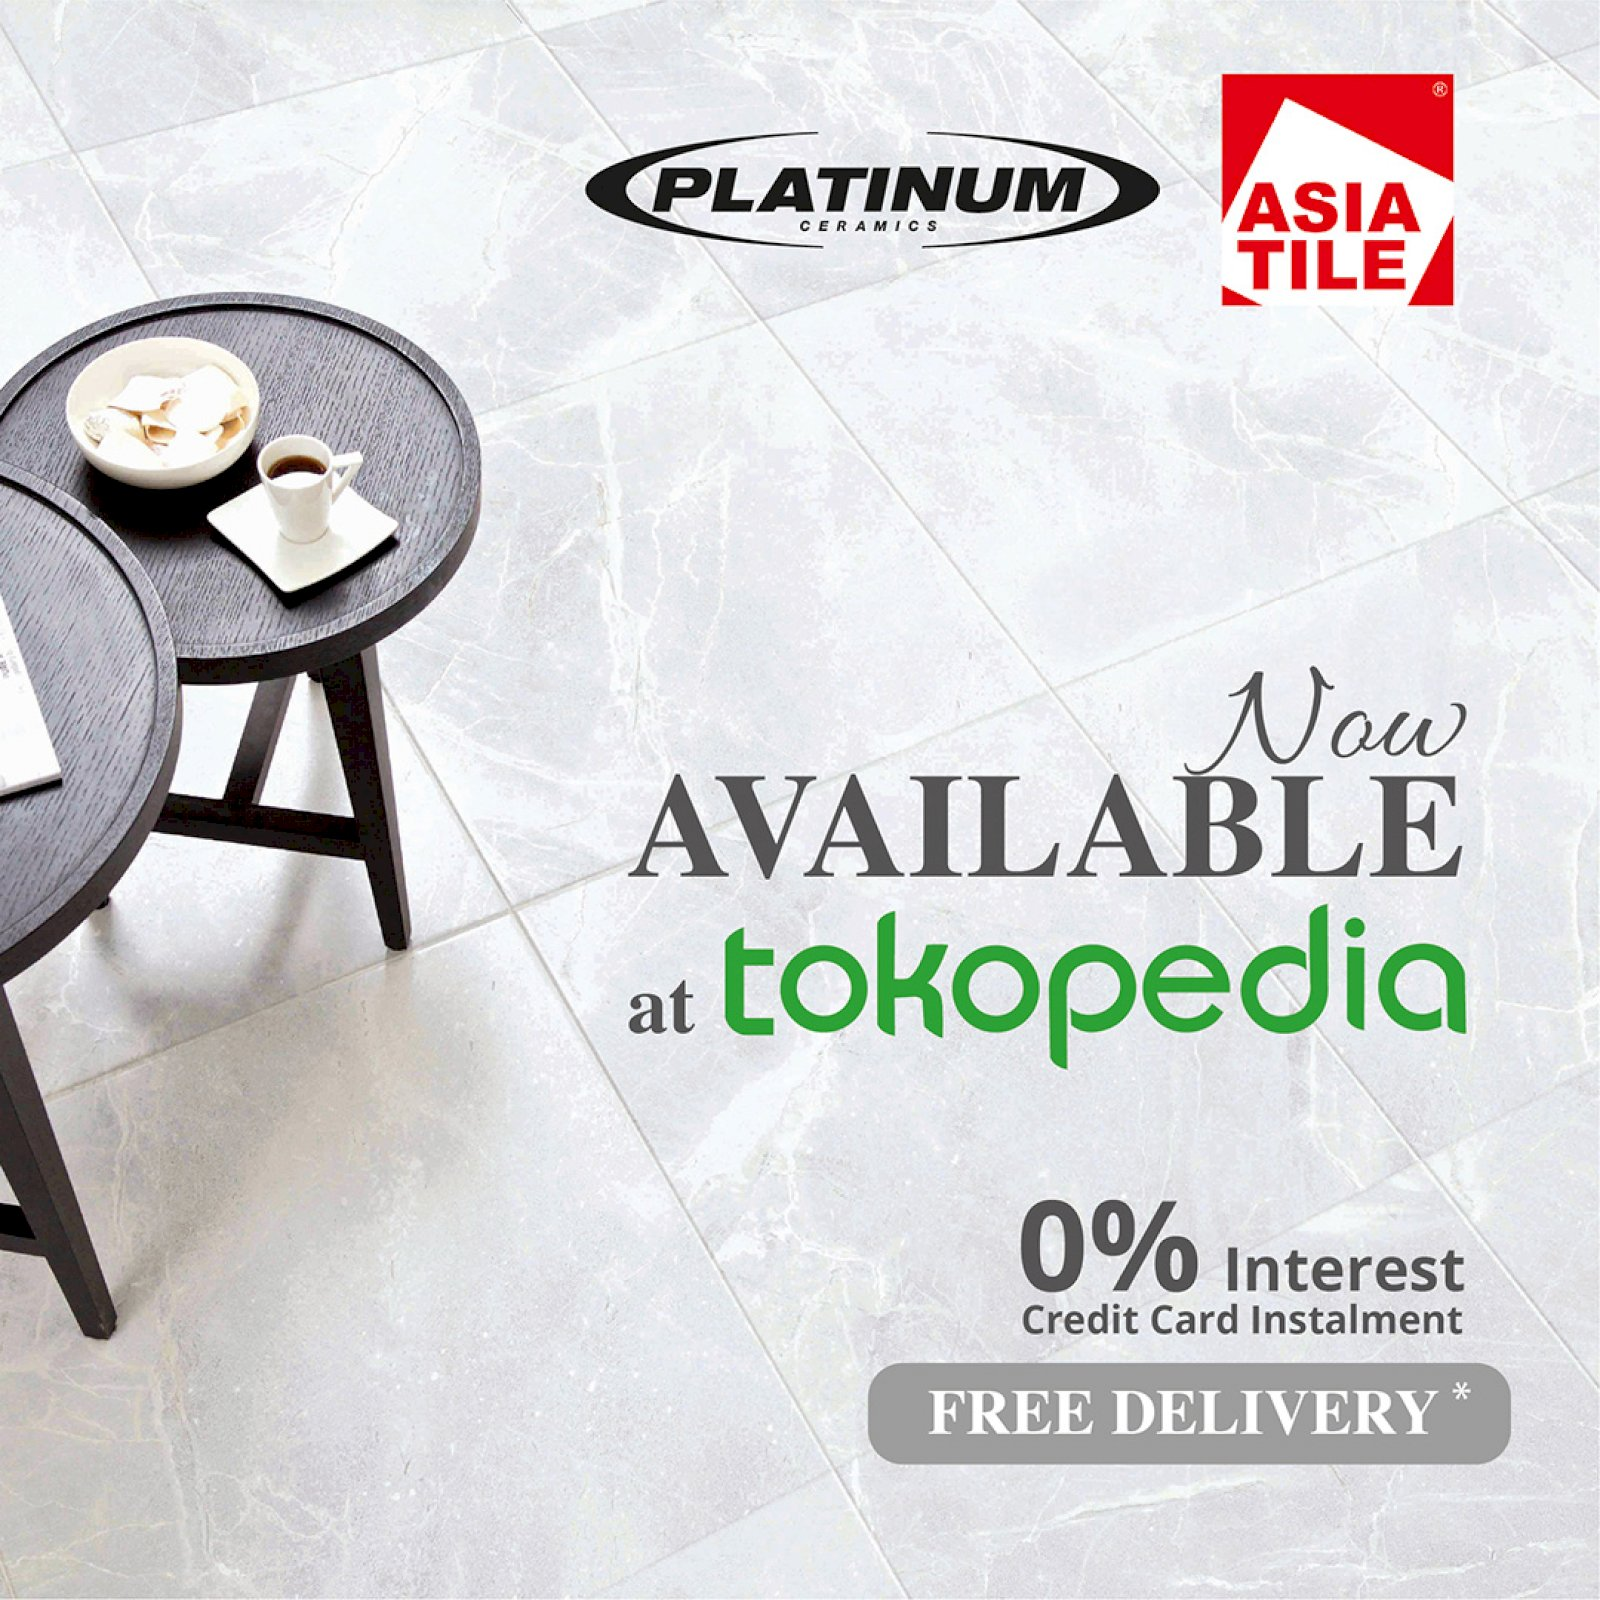 Platinum Ceramics & Asia Tile are now available at Tokopedia